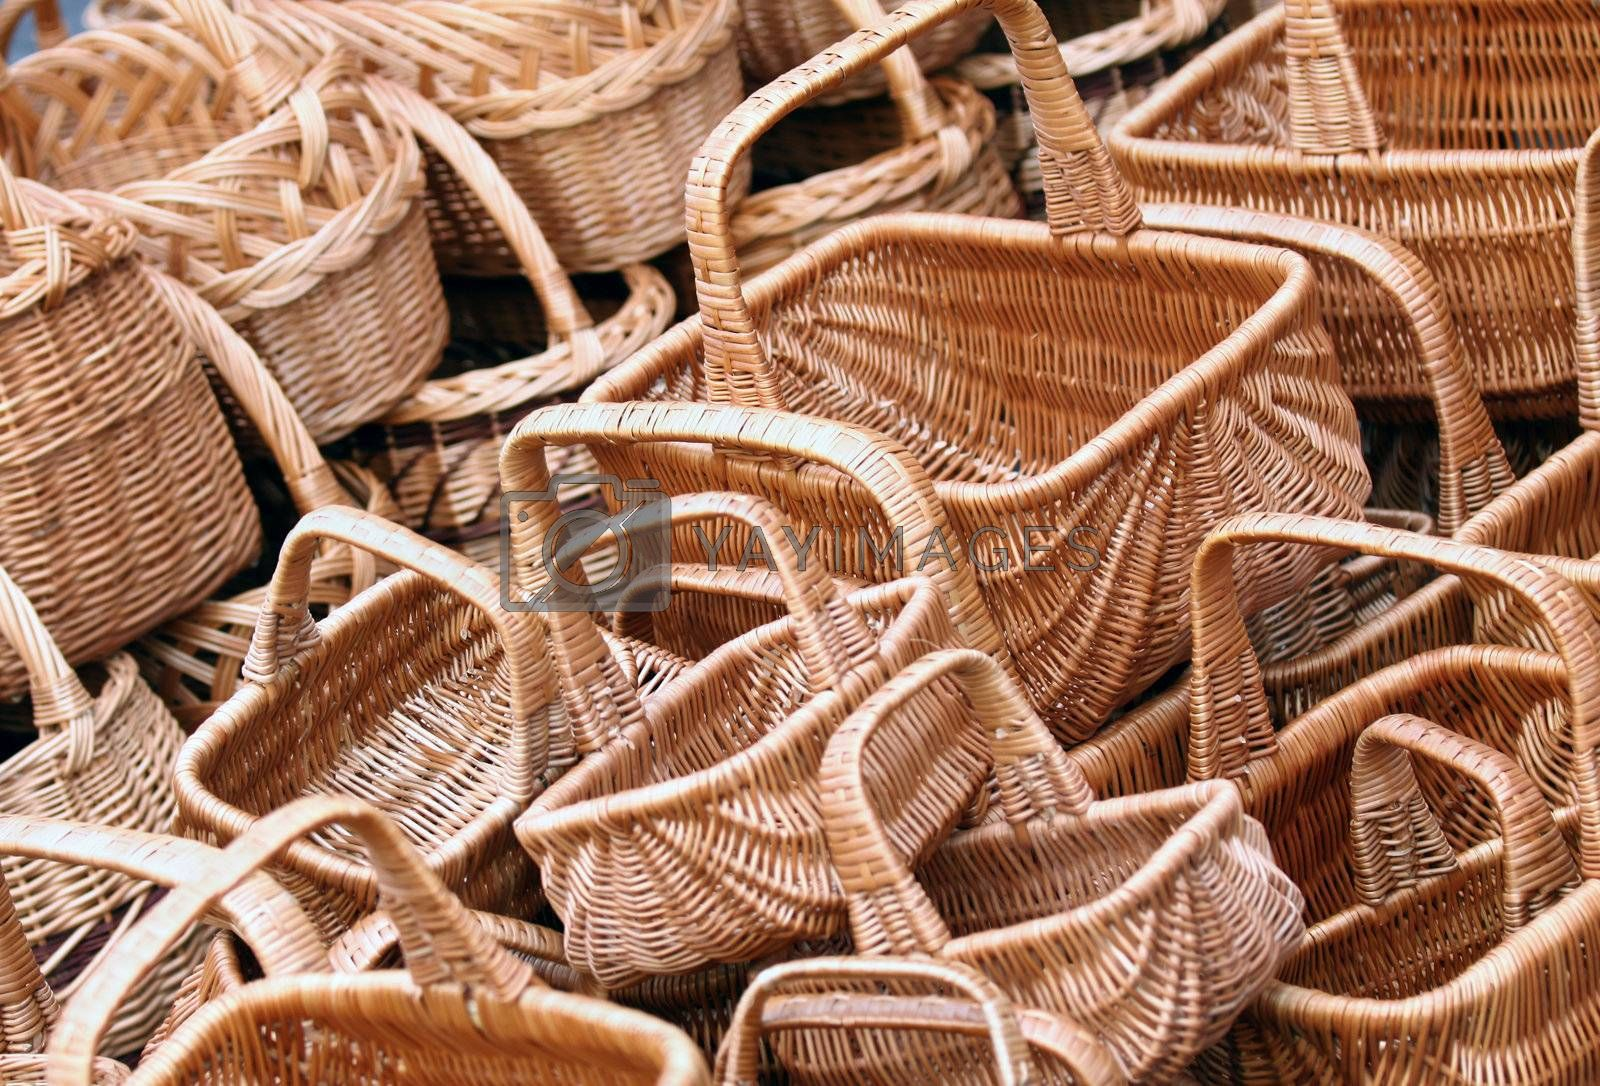 Empty new wicker baskets for sell, displayed at the market or fair